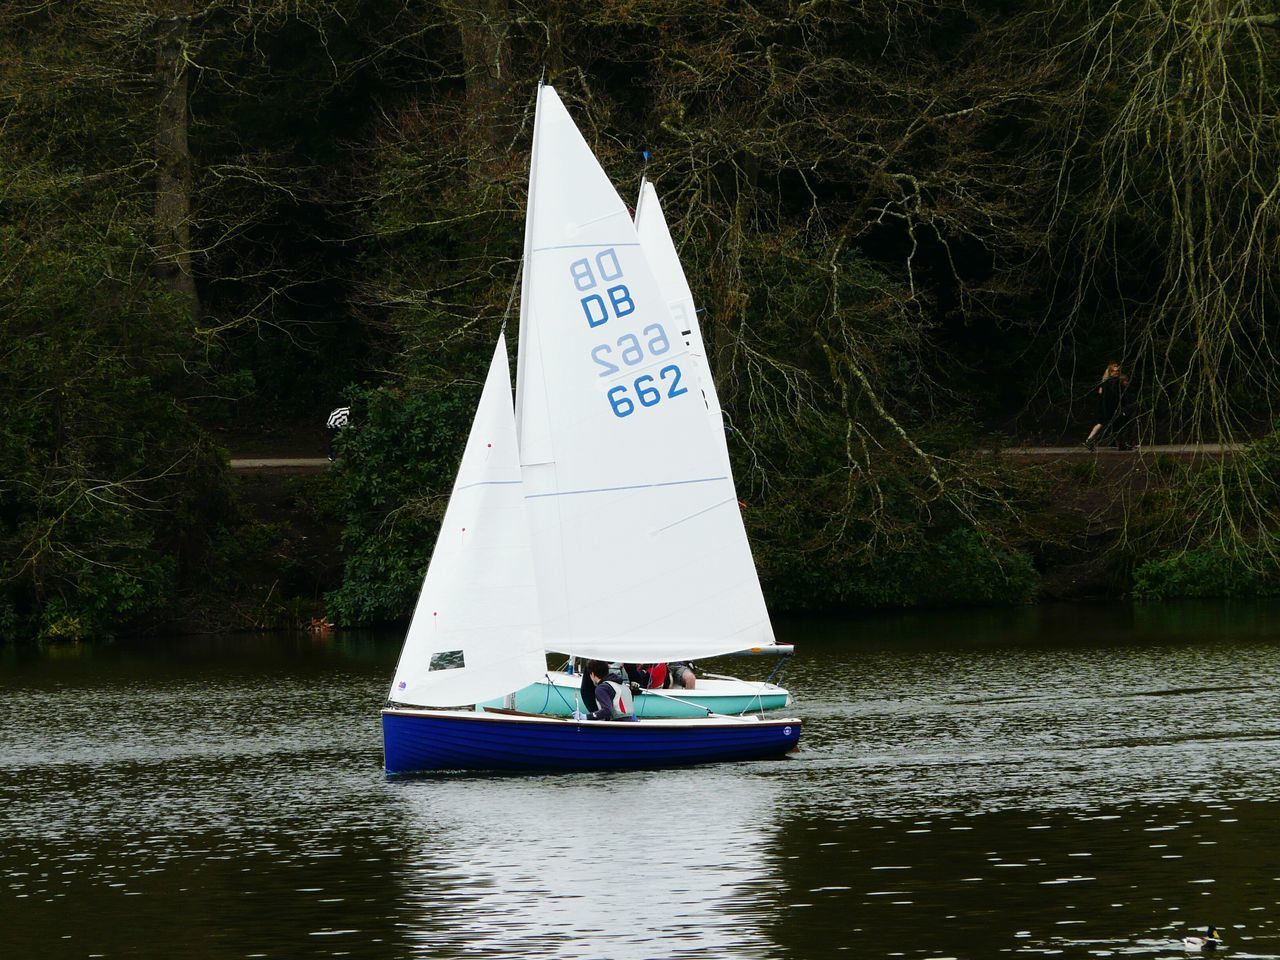 Sailing Boat Lakeside Walk Relaxing Taking Photos Transportation Boat Races Check This Out Enjoying Life Having Fun :)